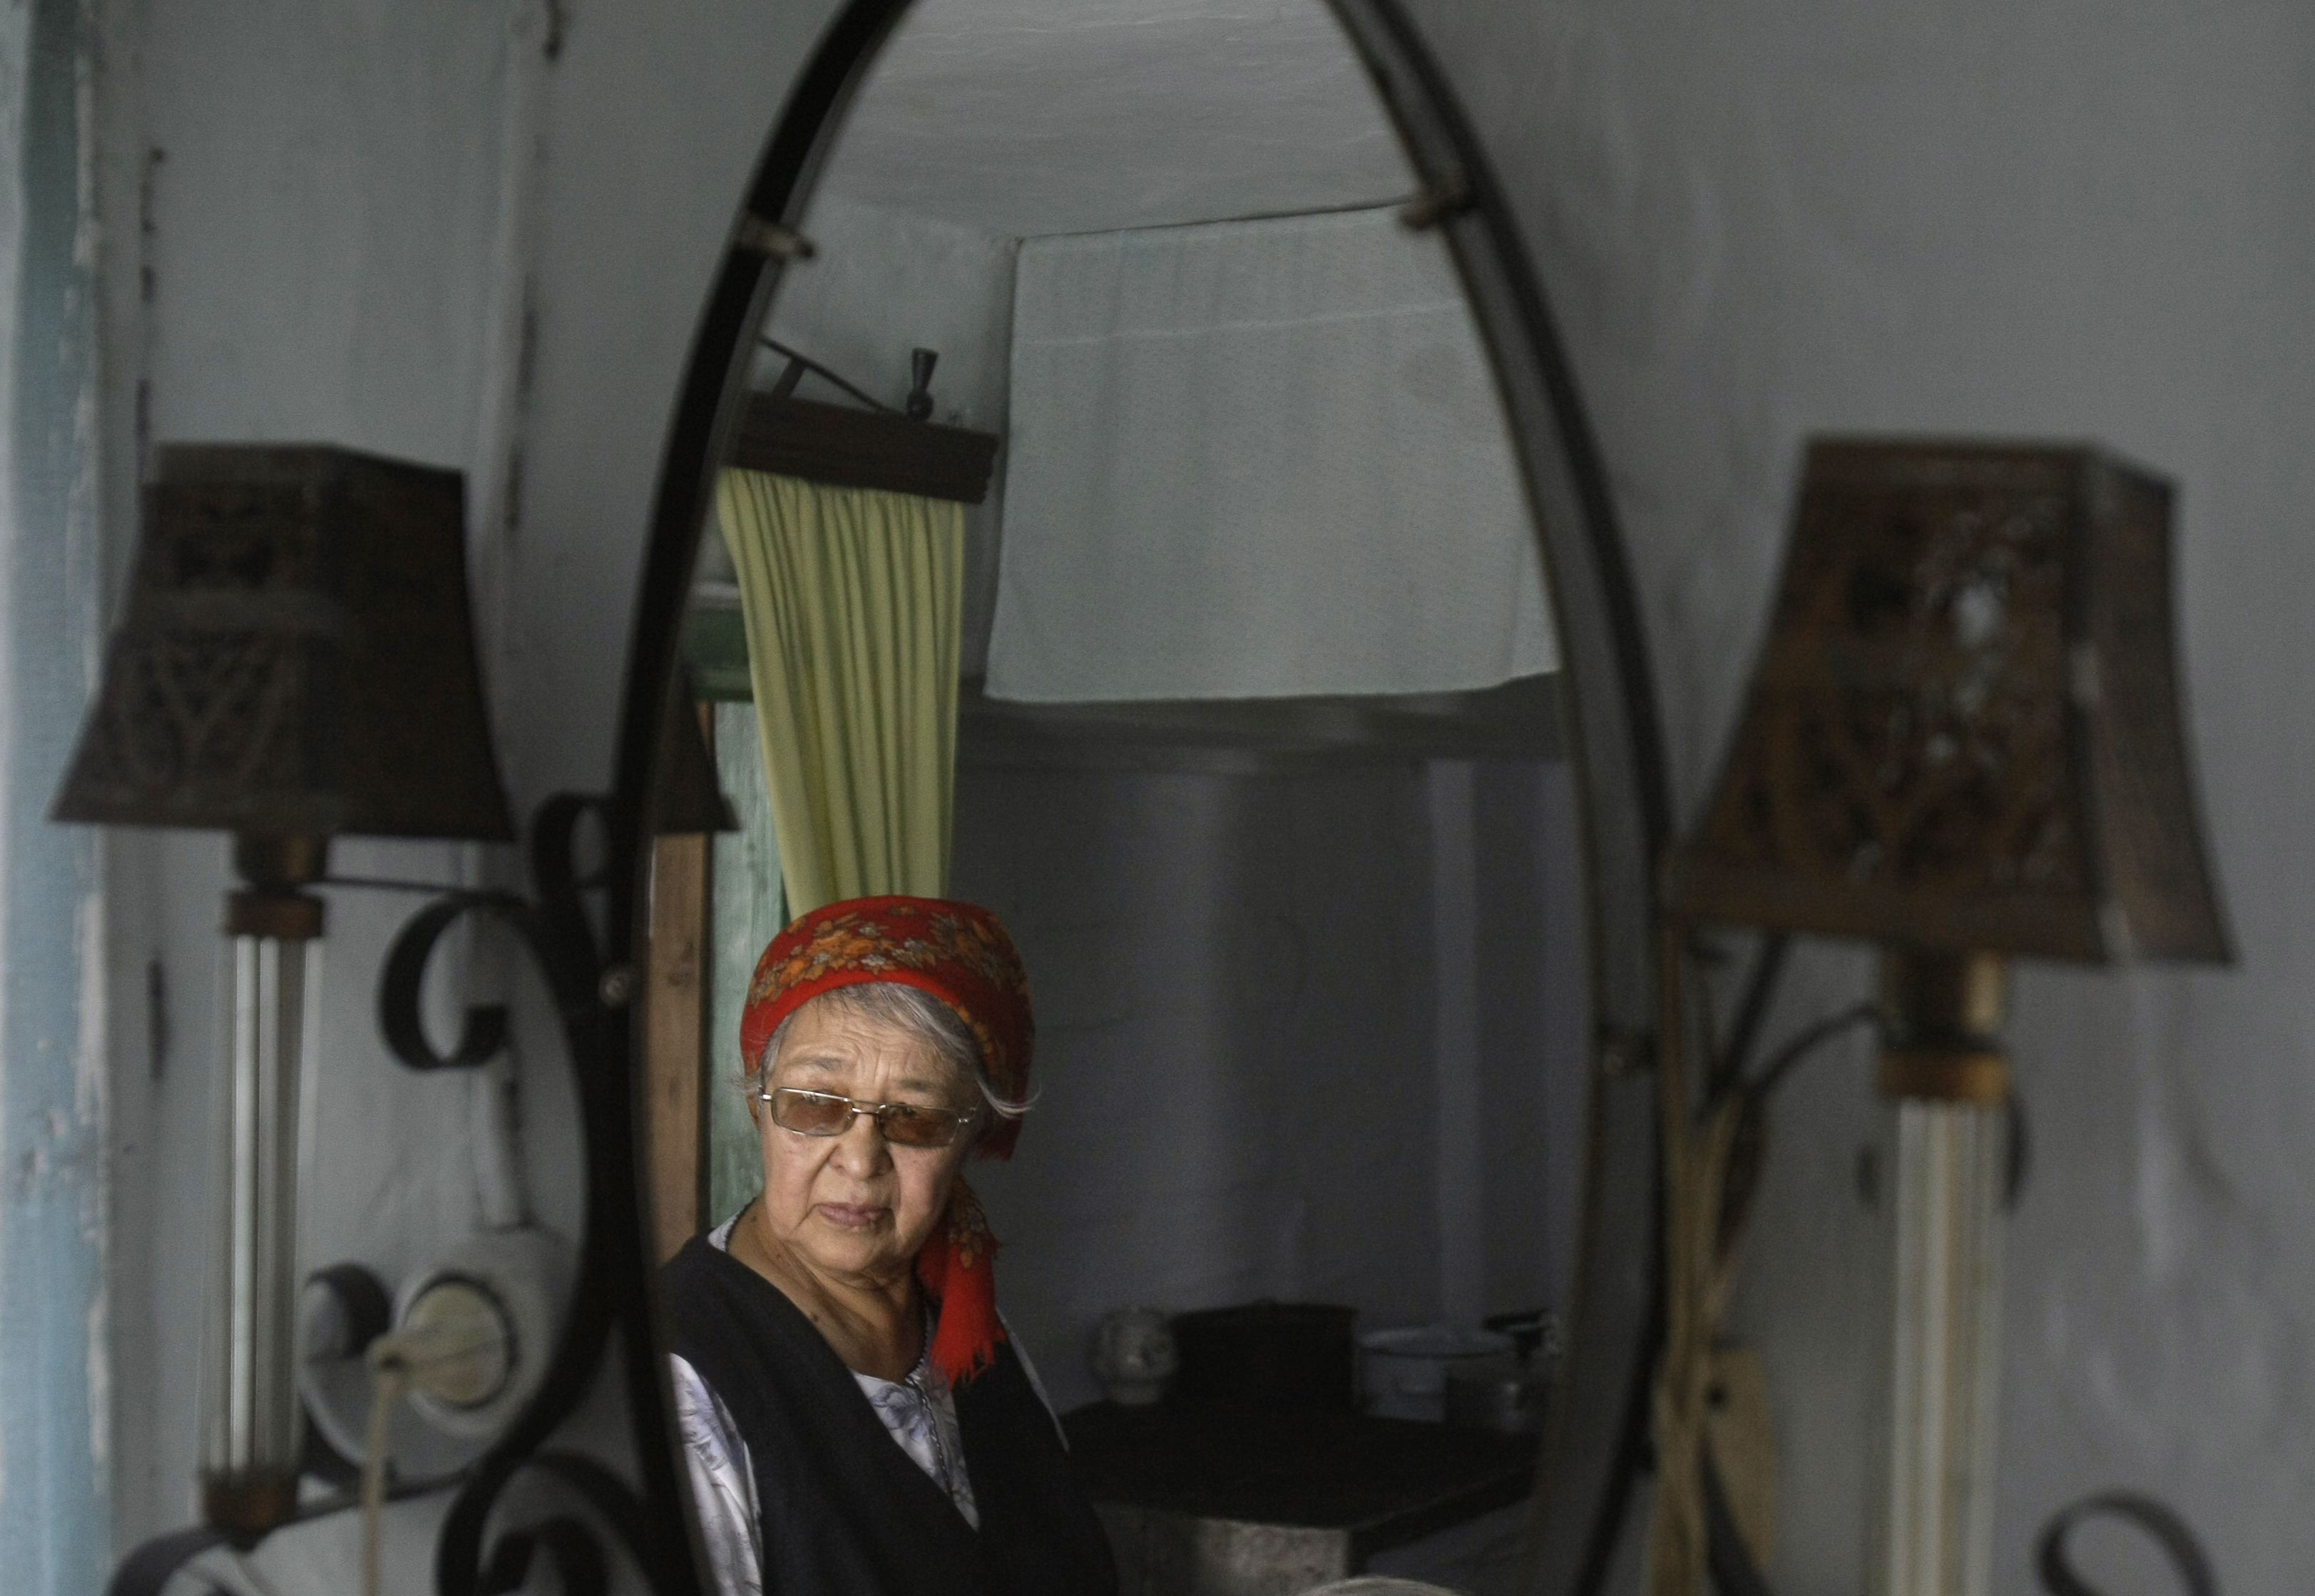 Rufina Aponkina stands in her house in the village of Chuvashka, Russia on Dec. 19, 2008.